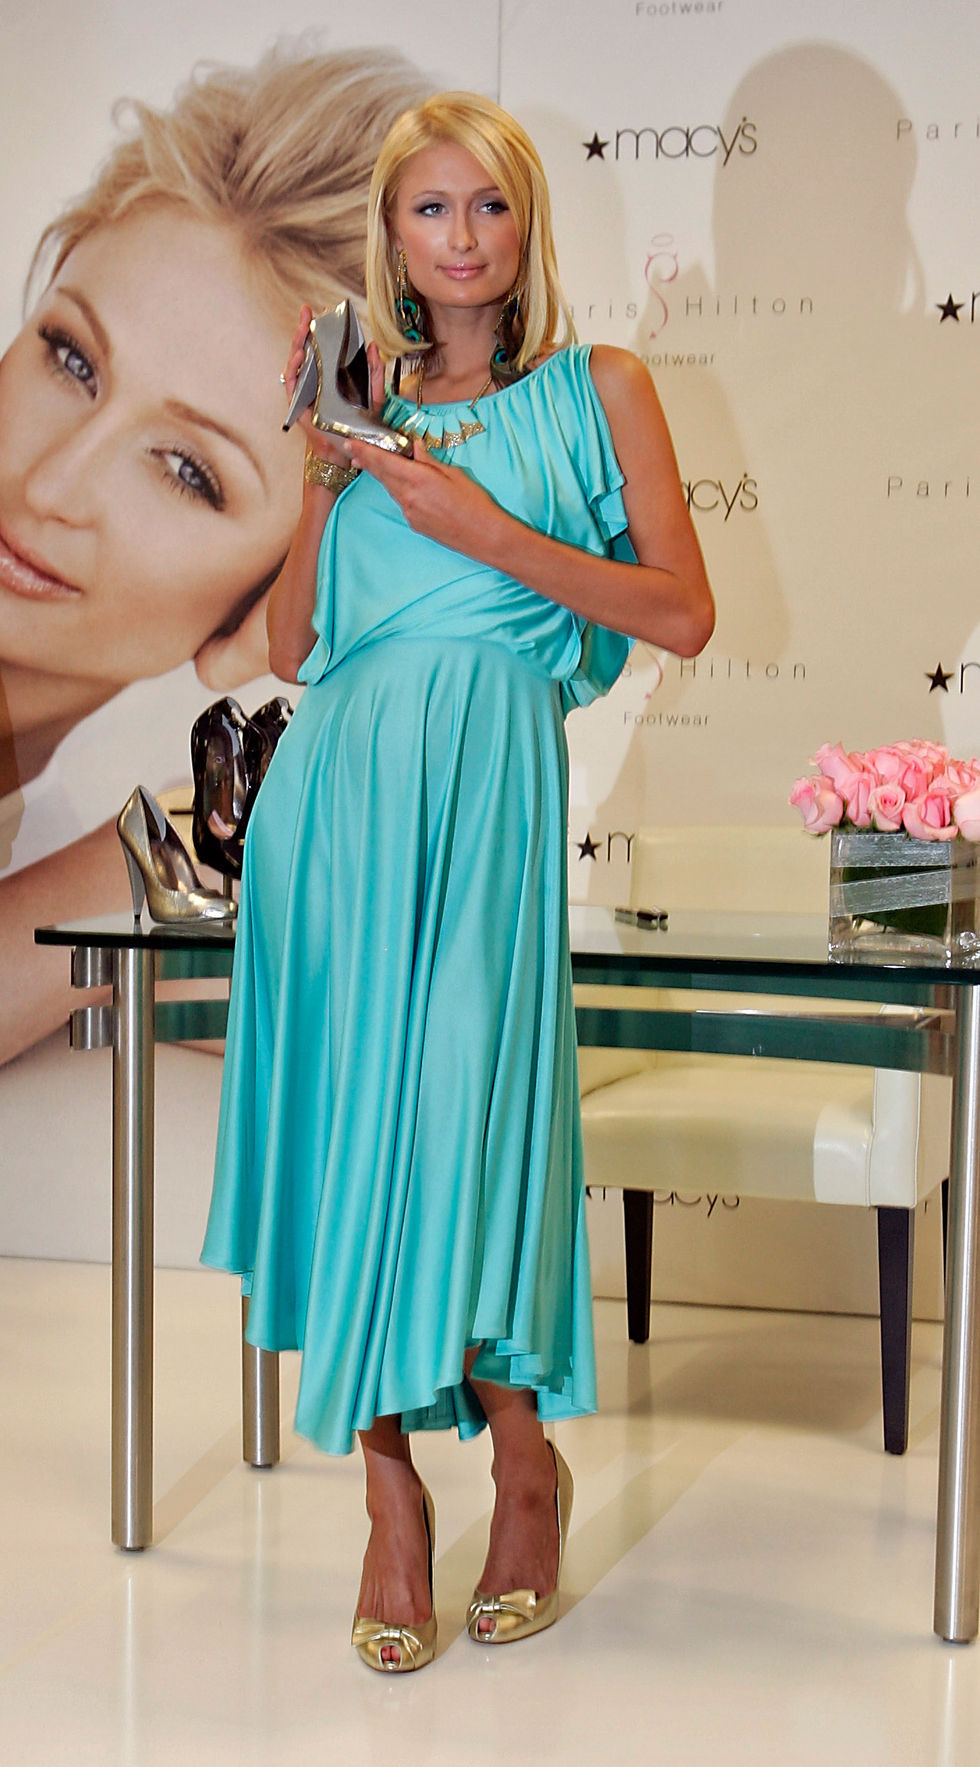 paris-hilton-paris-hilton-footwear-fall-collection-debut-at-the-macys-in-las-vegas-01